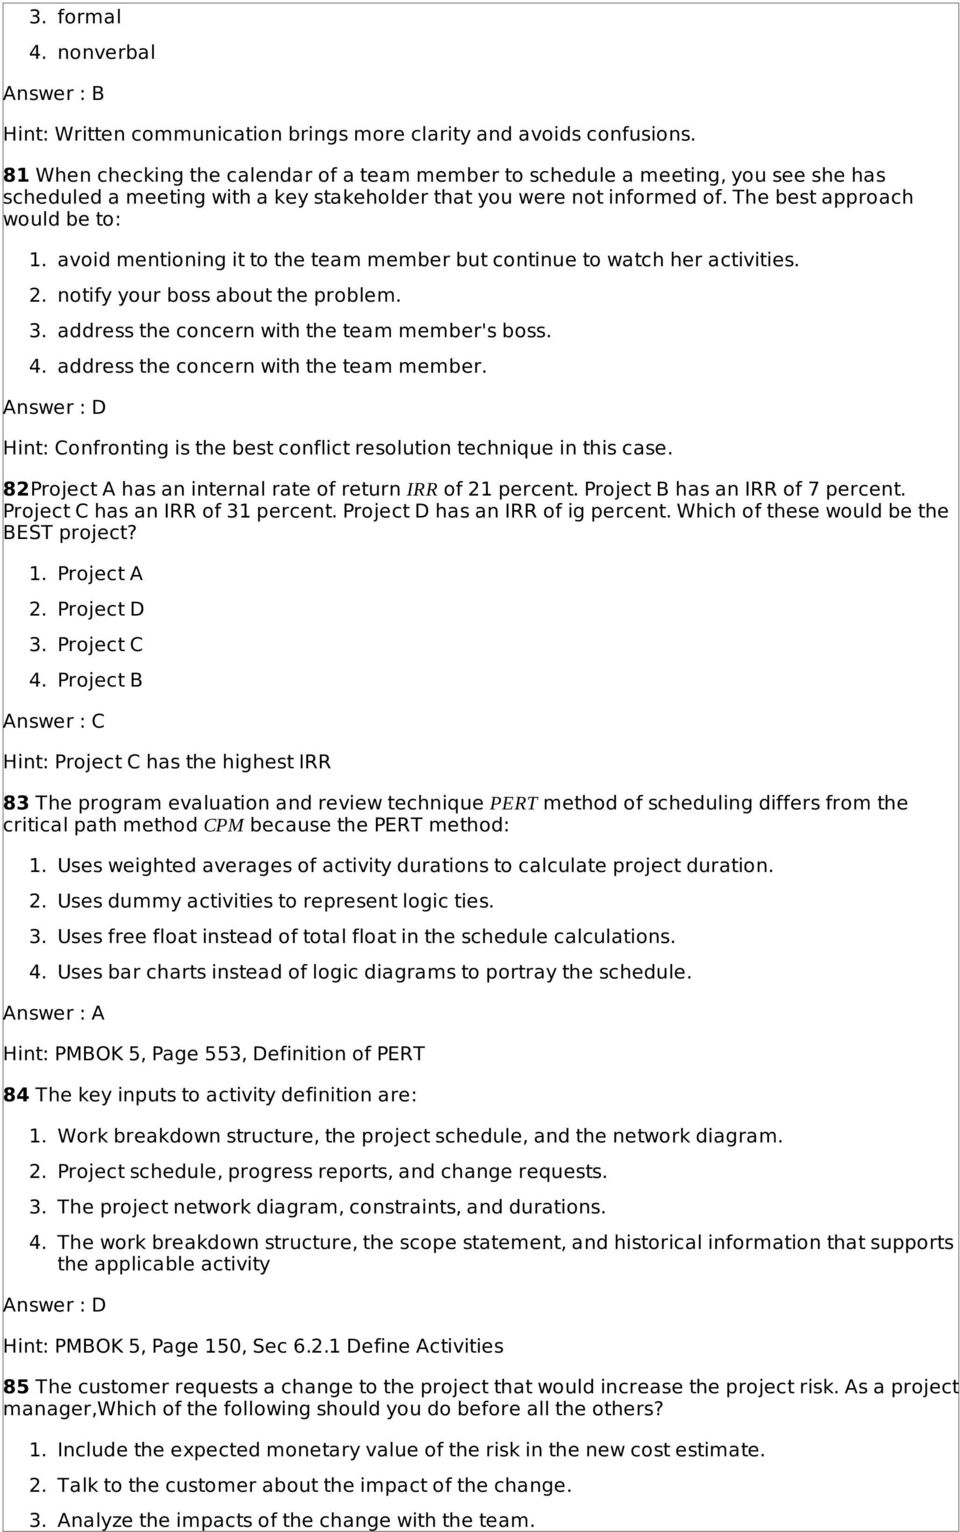 Pmp Sample Questions Based On Pmbok 5th Edition Pdf Logic Diagram Definition Avoid Mentioning It To The Team Member But Continue Watch Her Activities 2